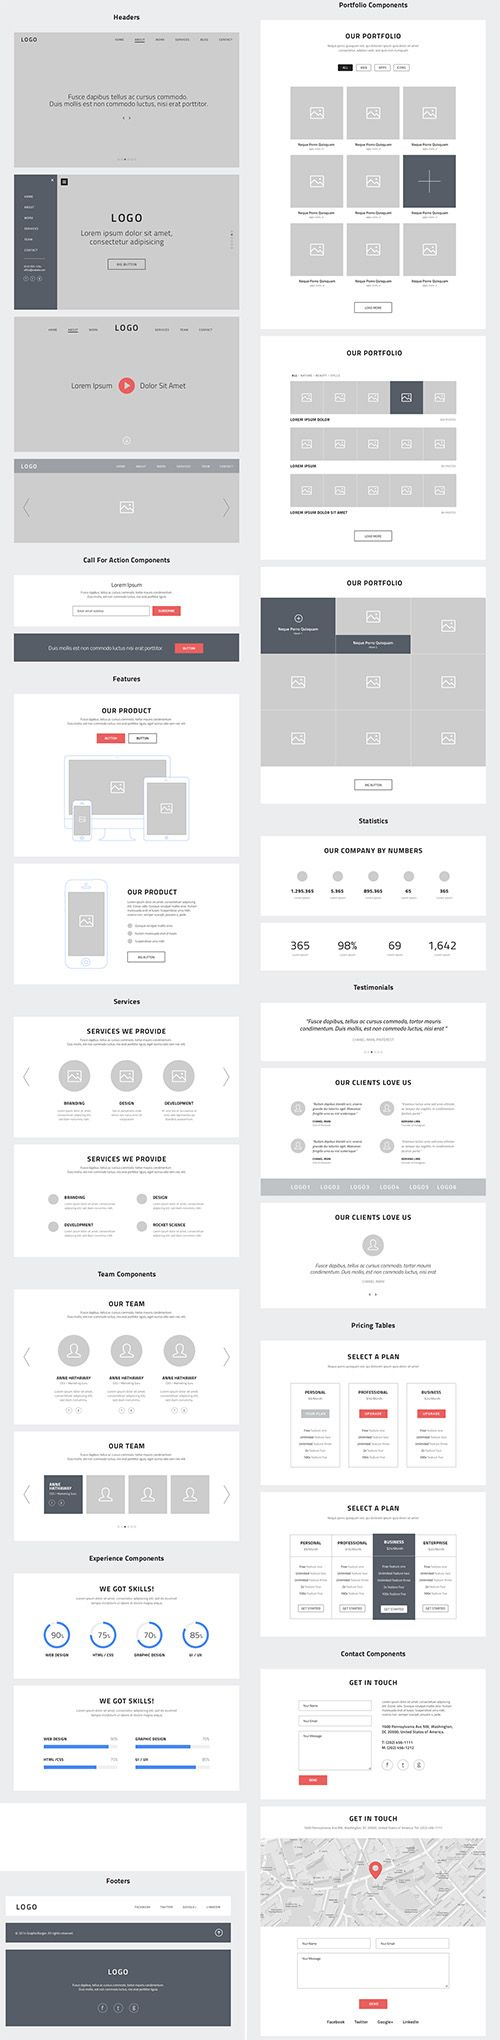 PSD Web Design - One Page Website Wireframes » Graphic GFX PSD Sources Stock Vector Image Tutorials Download http://www.intelisystems.com